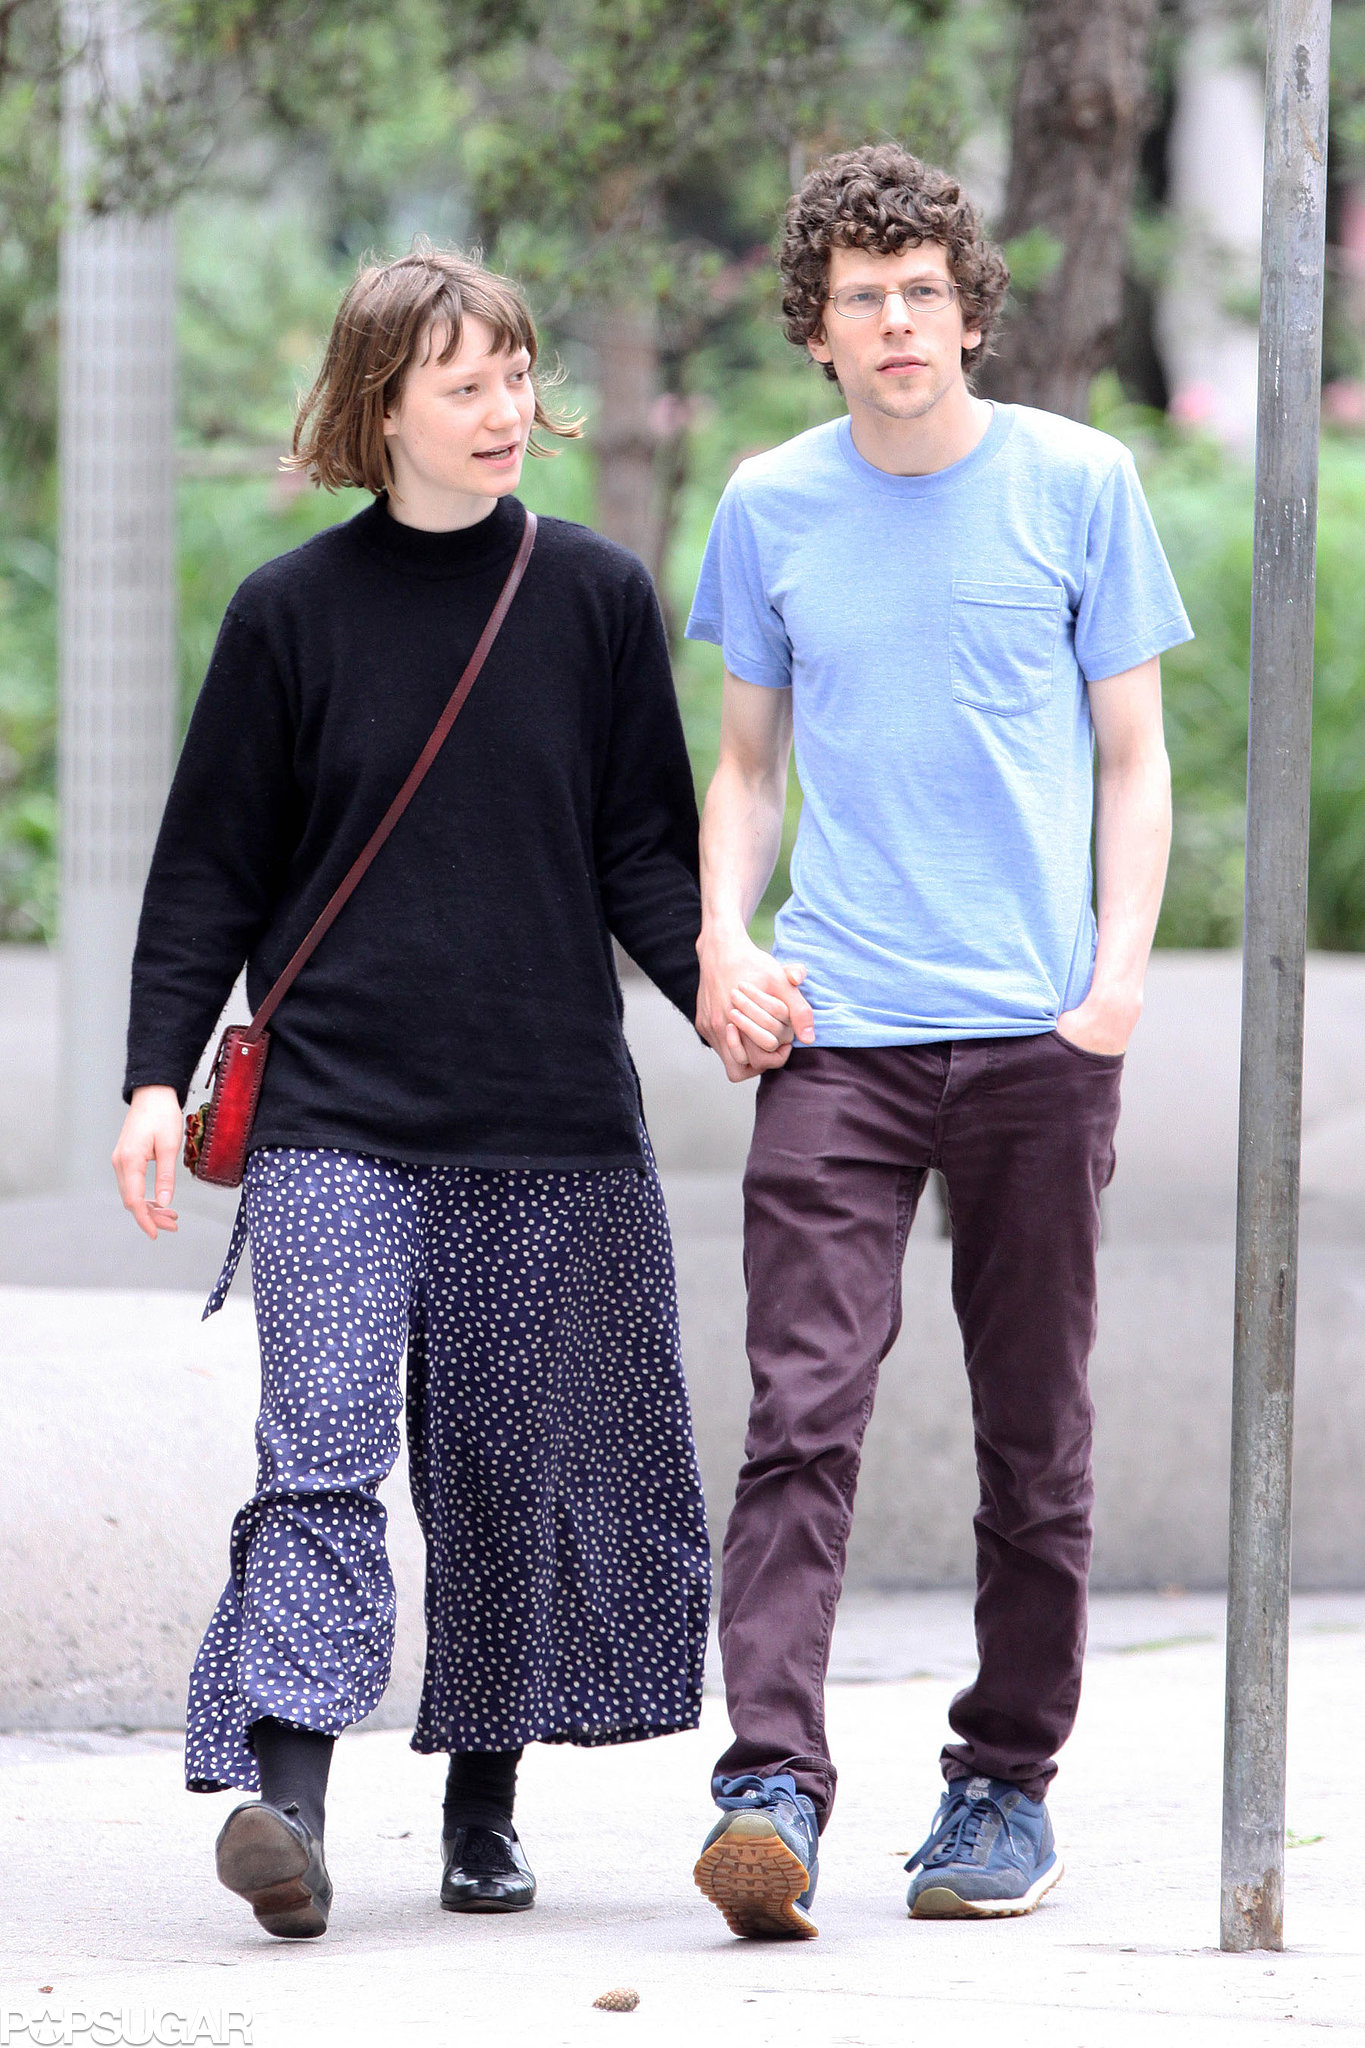 Jesse eisenberg dating 2015